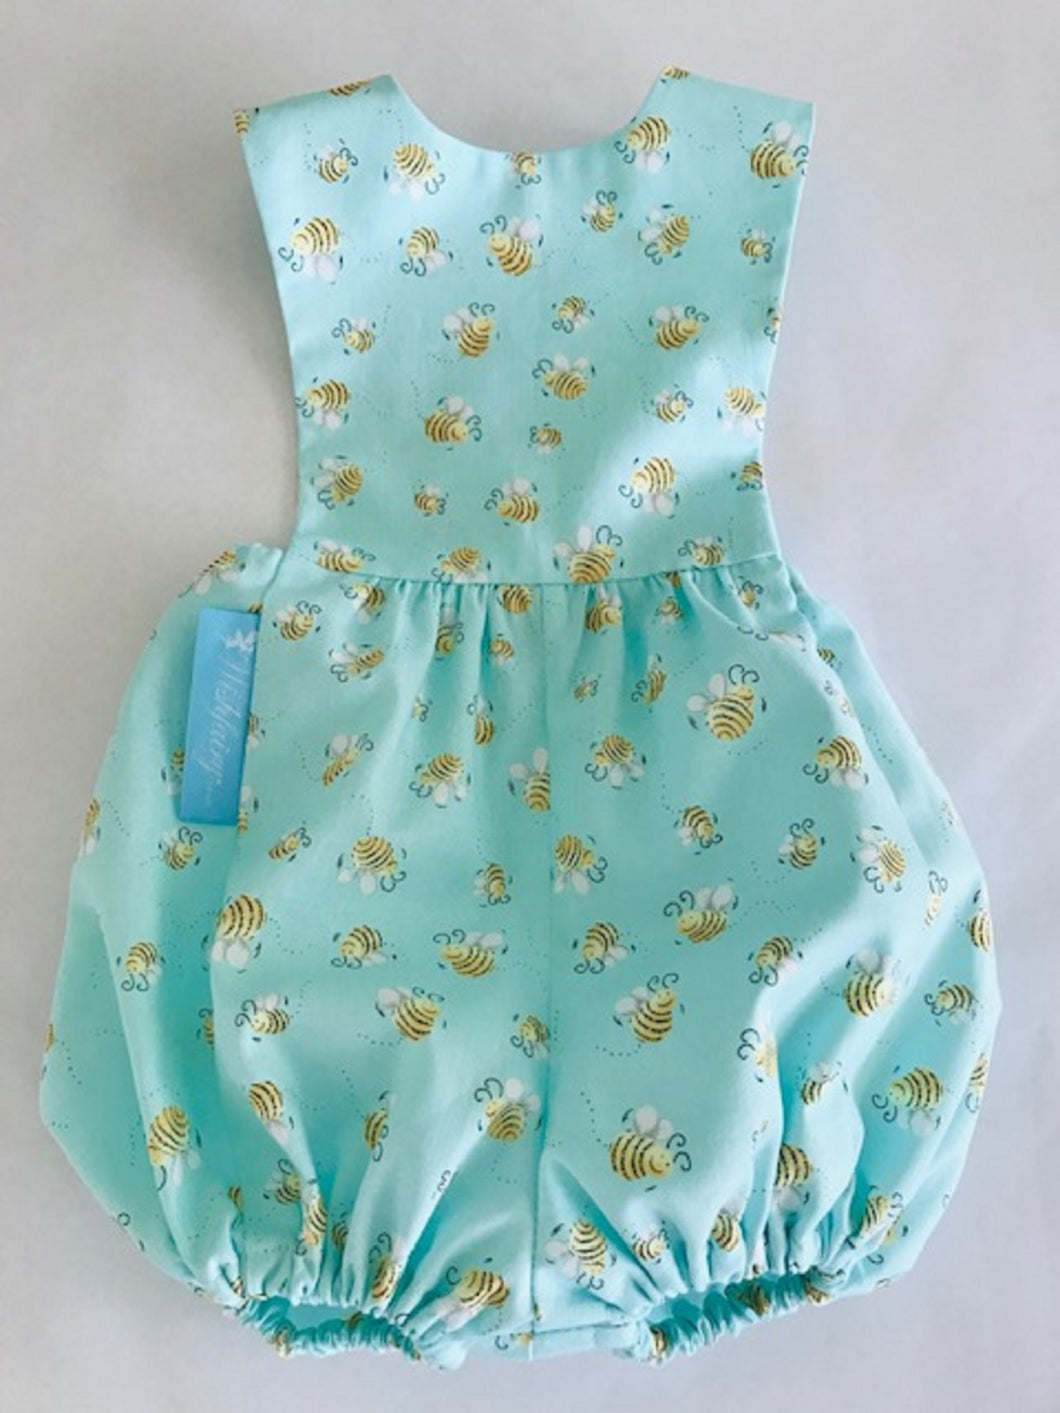 The Wishfairy Baby Riley Romper Suit (Buzzy Bees on Blue)